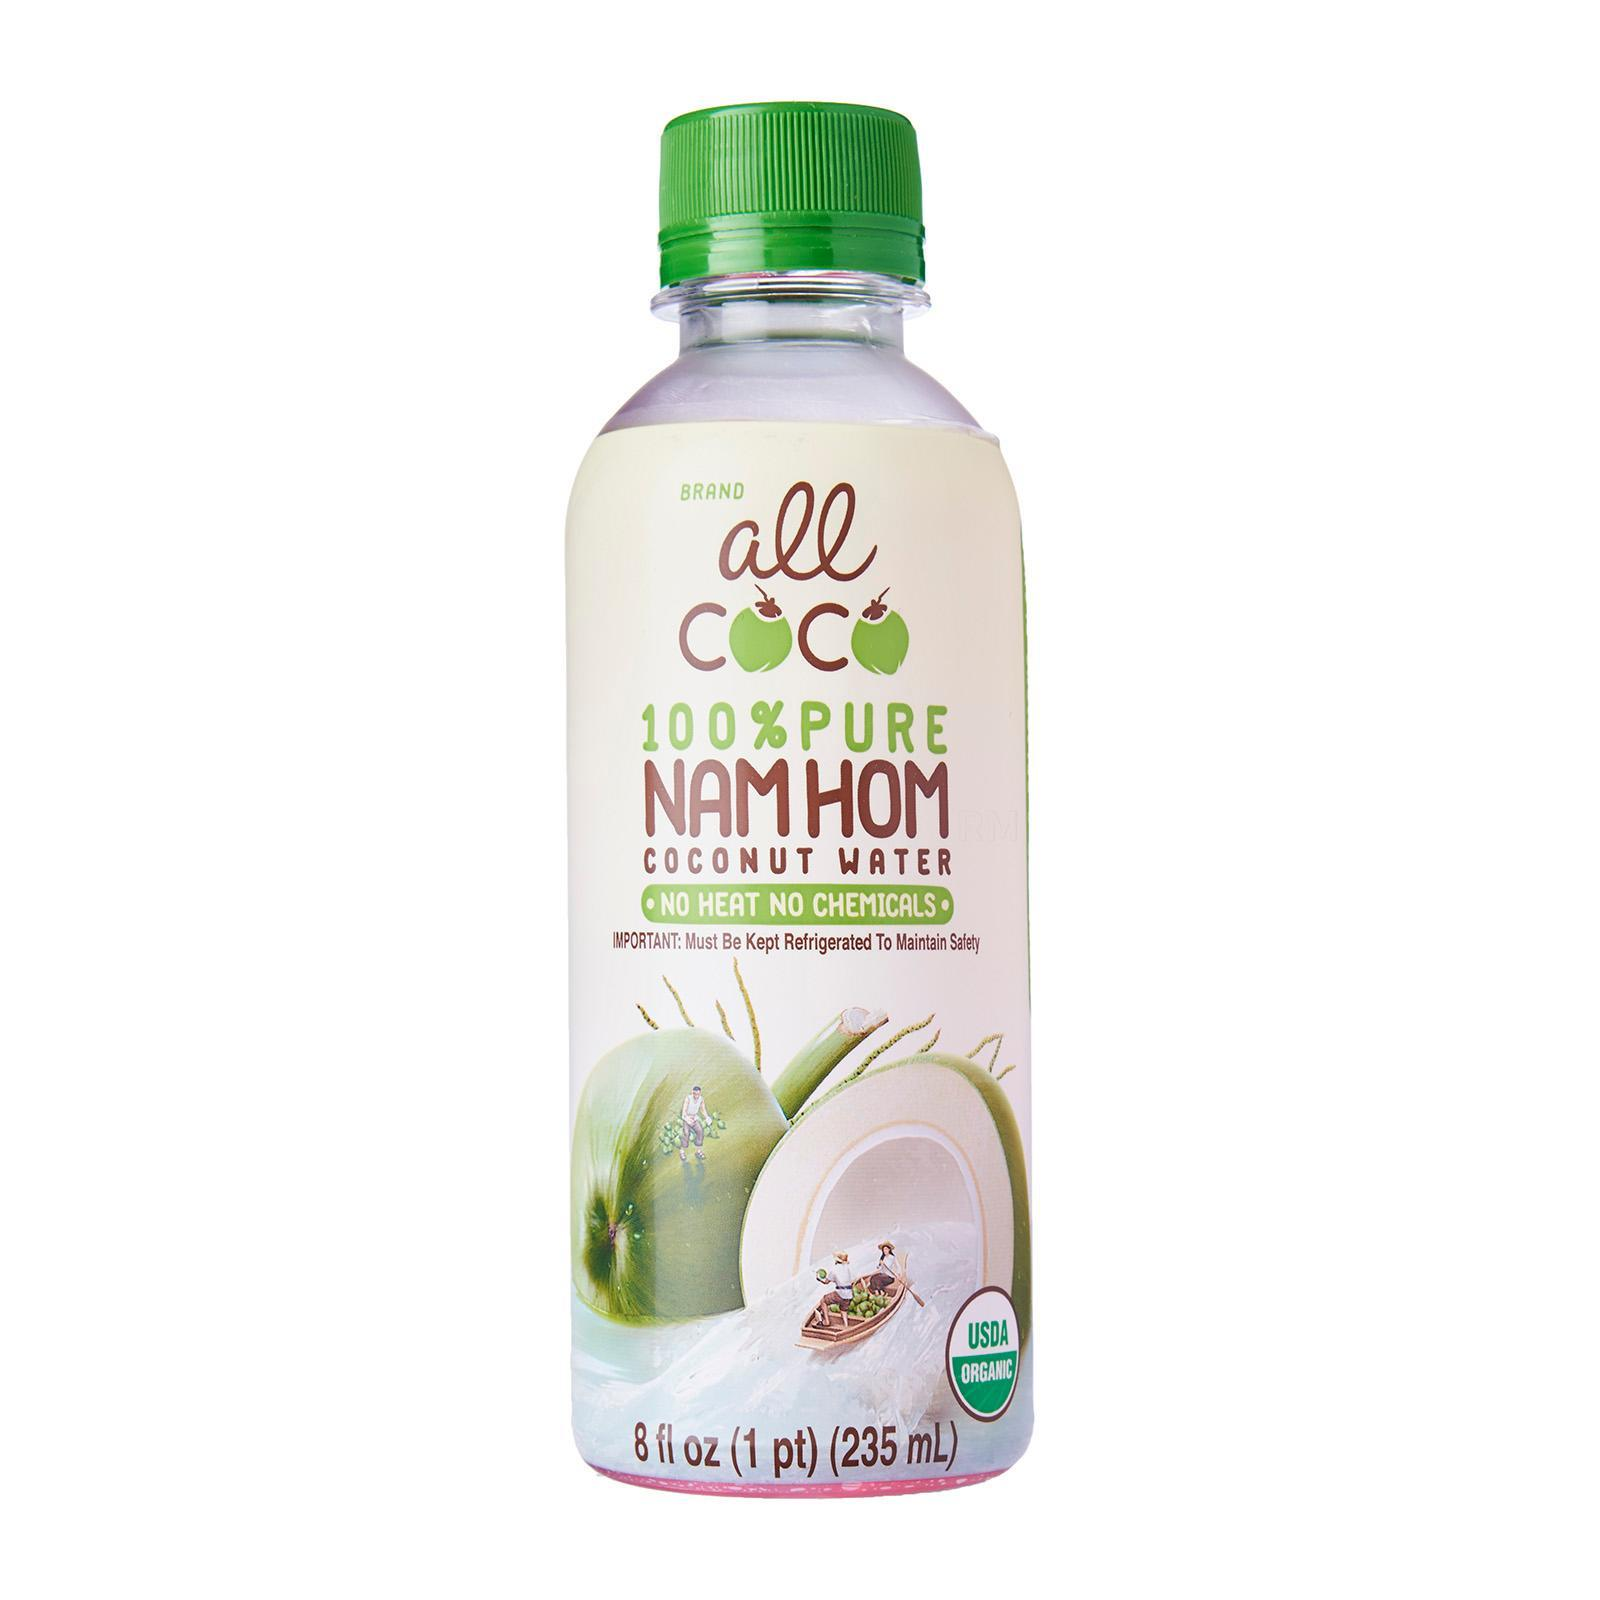 All Coco Nam Hom 100% Pure Organic Coconut Water By Redmart.